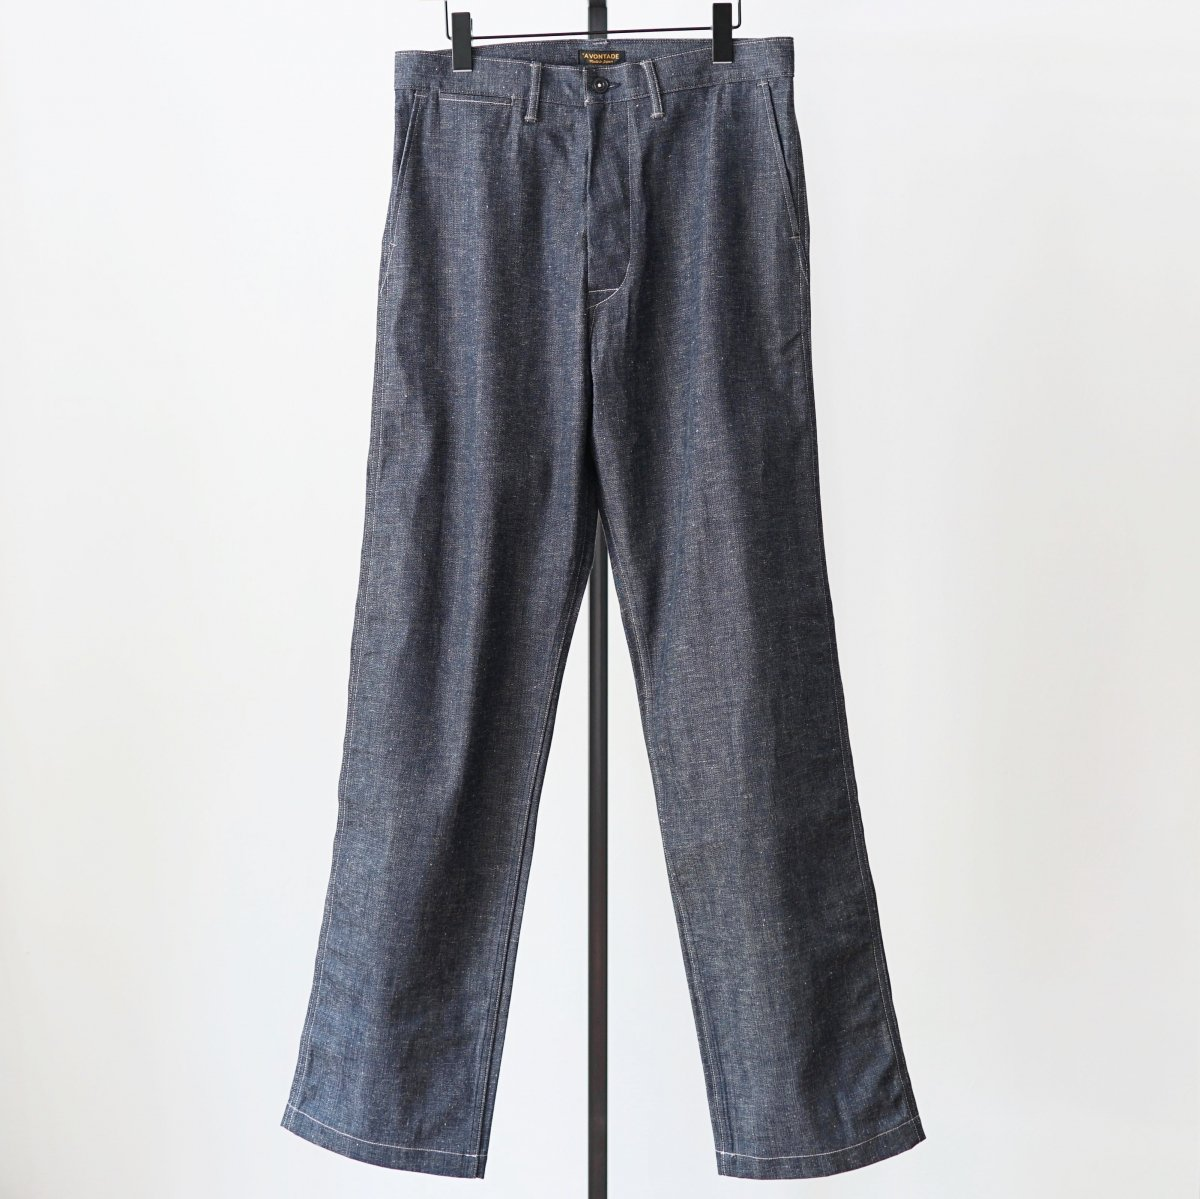 【AVONTADE アボンタージ】PW DENIM TROUSERS - INDIGO